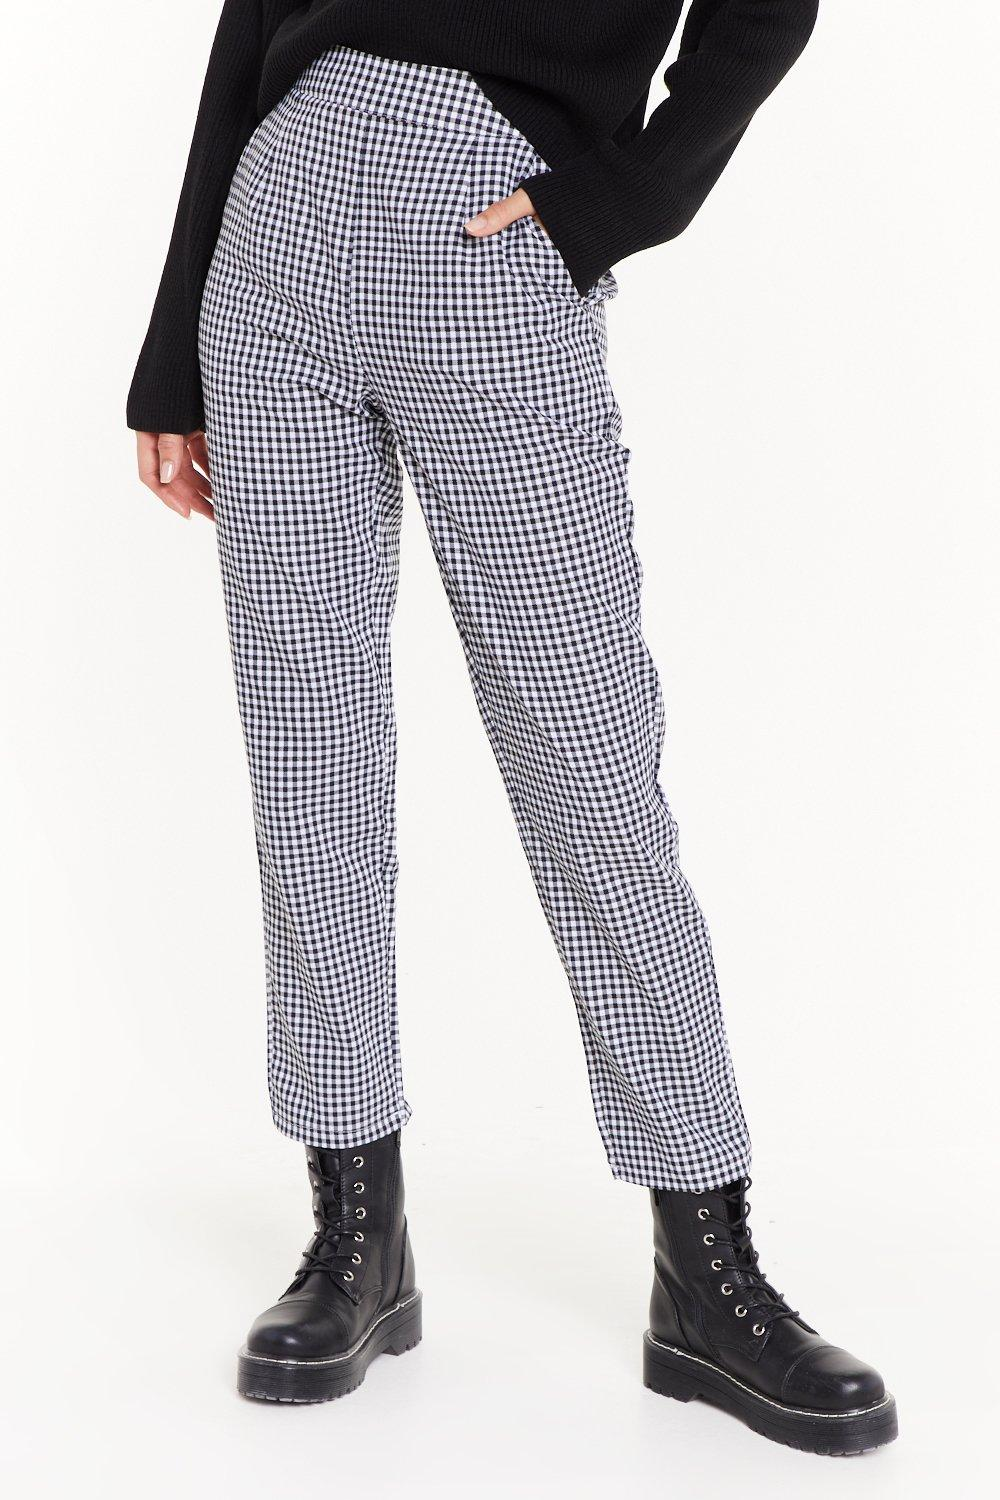 68c9bef98083 Gingham Up High-Waisted Pants | Shop Clothes at Nasty Gal!